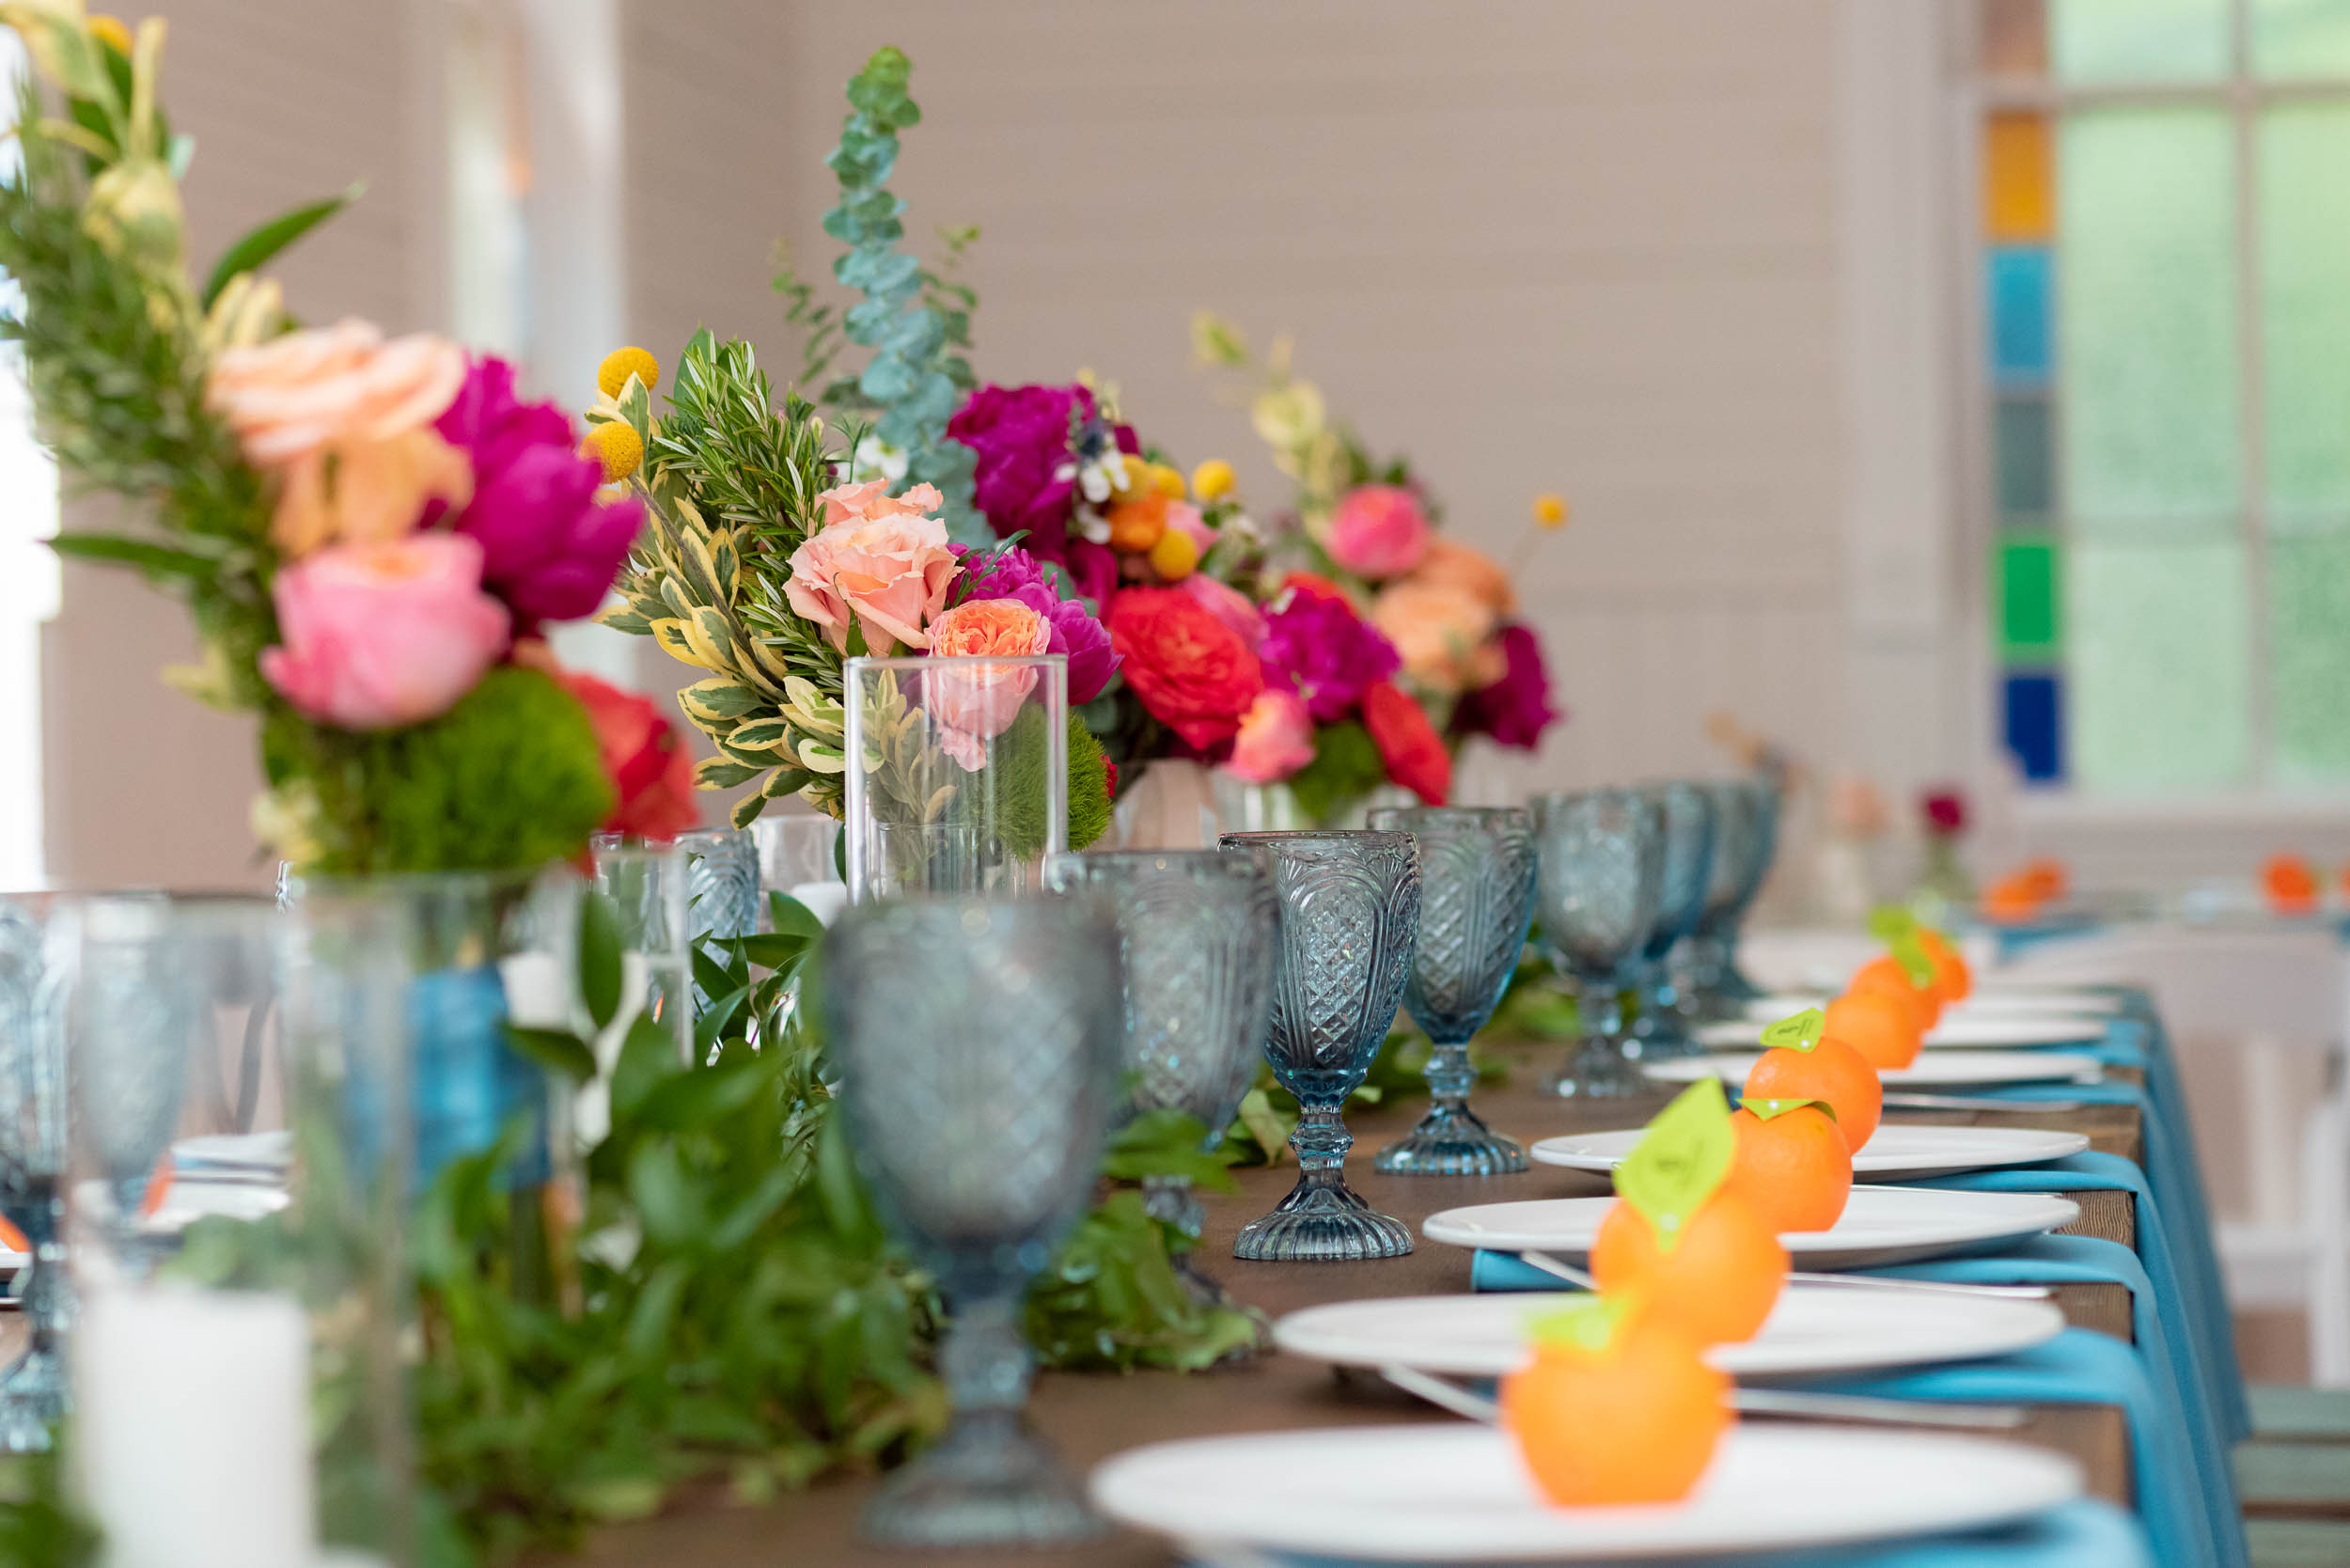 Mercury-Hall-Austin-Wedding-Photographers-texas-flowers-table-setting-blue-glasses-oranges